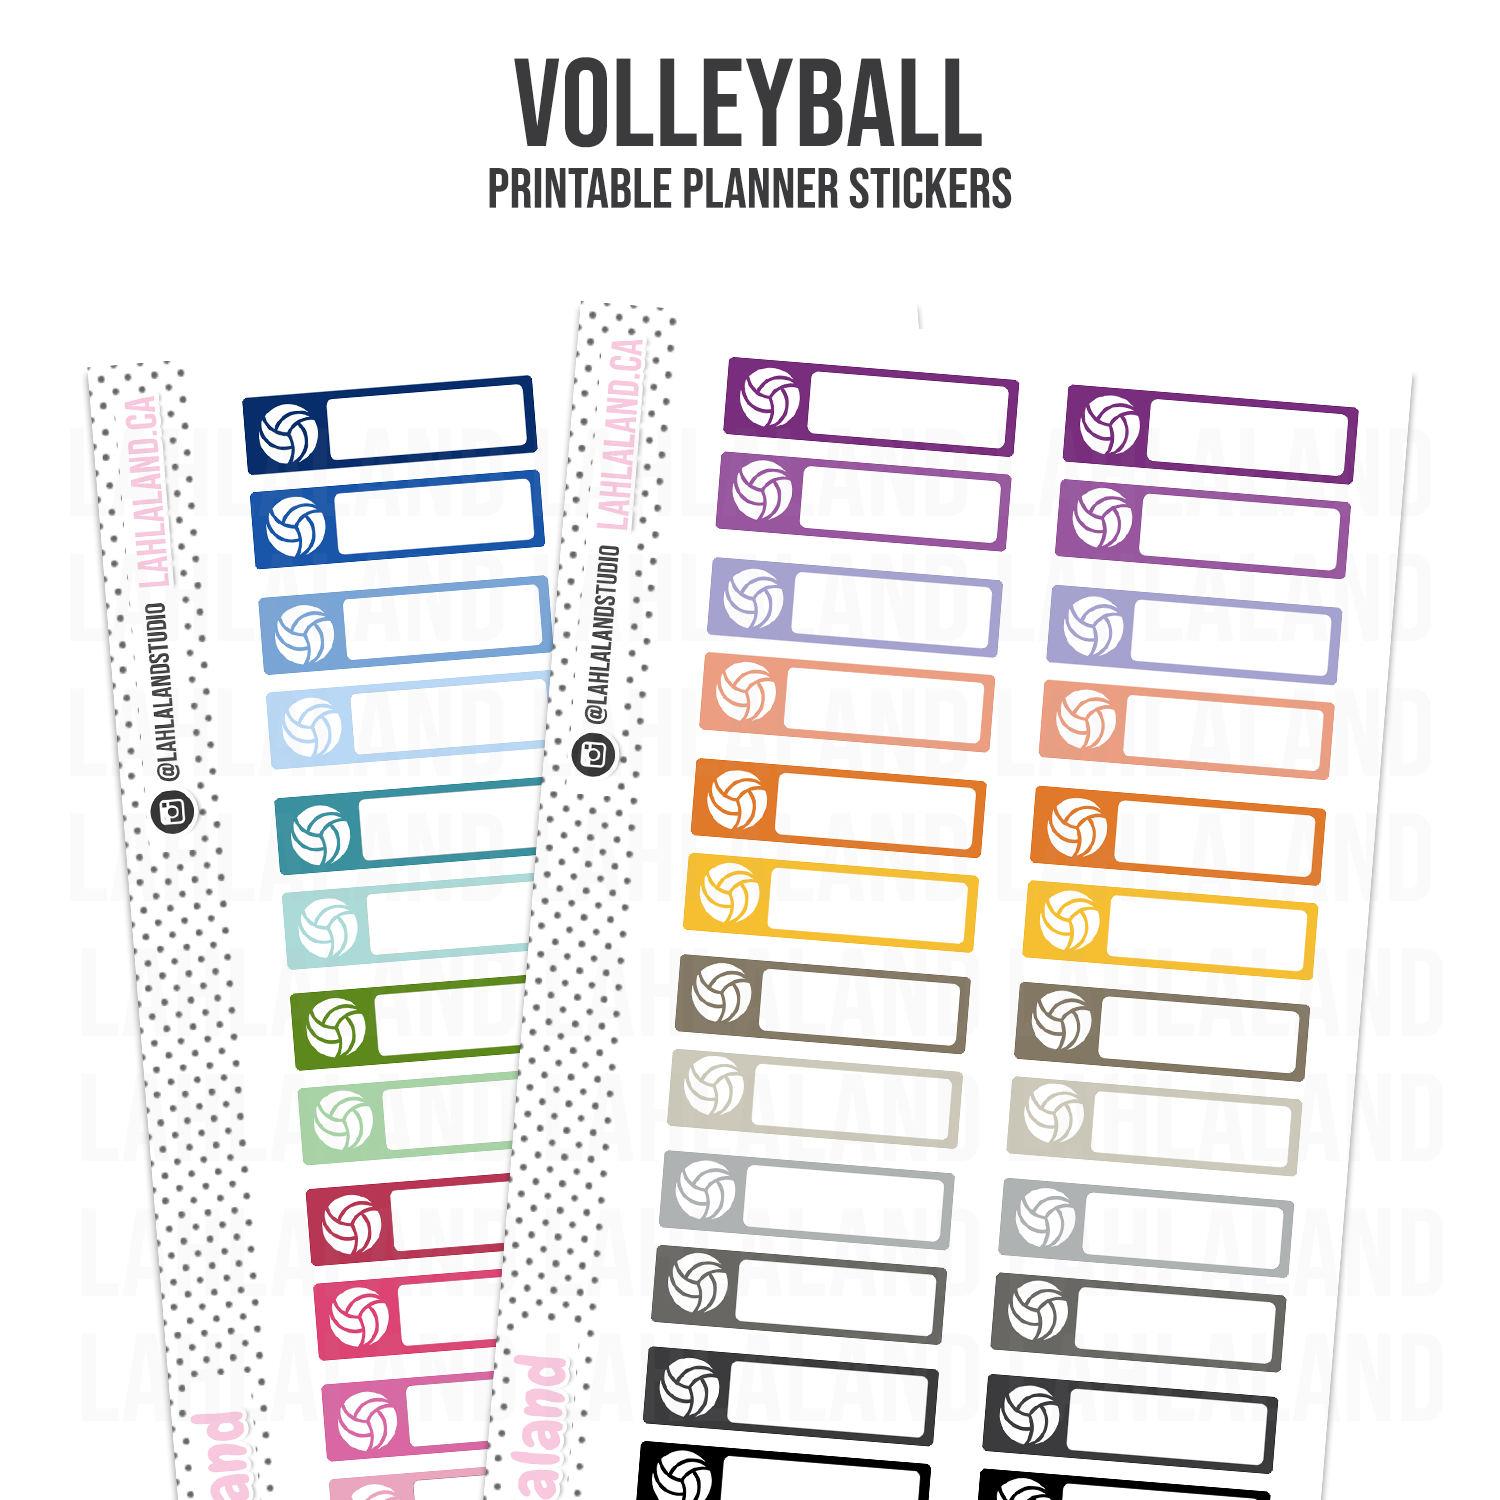 Volleyball - Functional Stickers